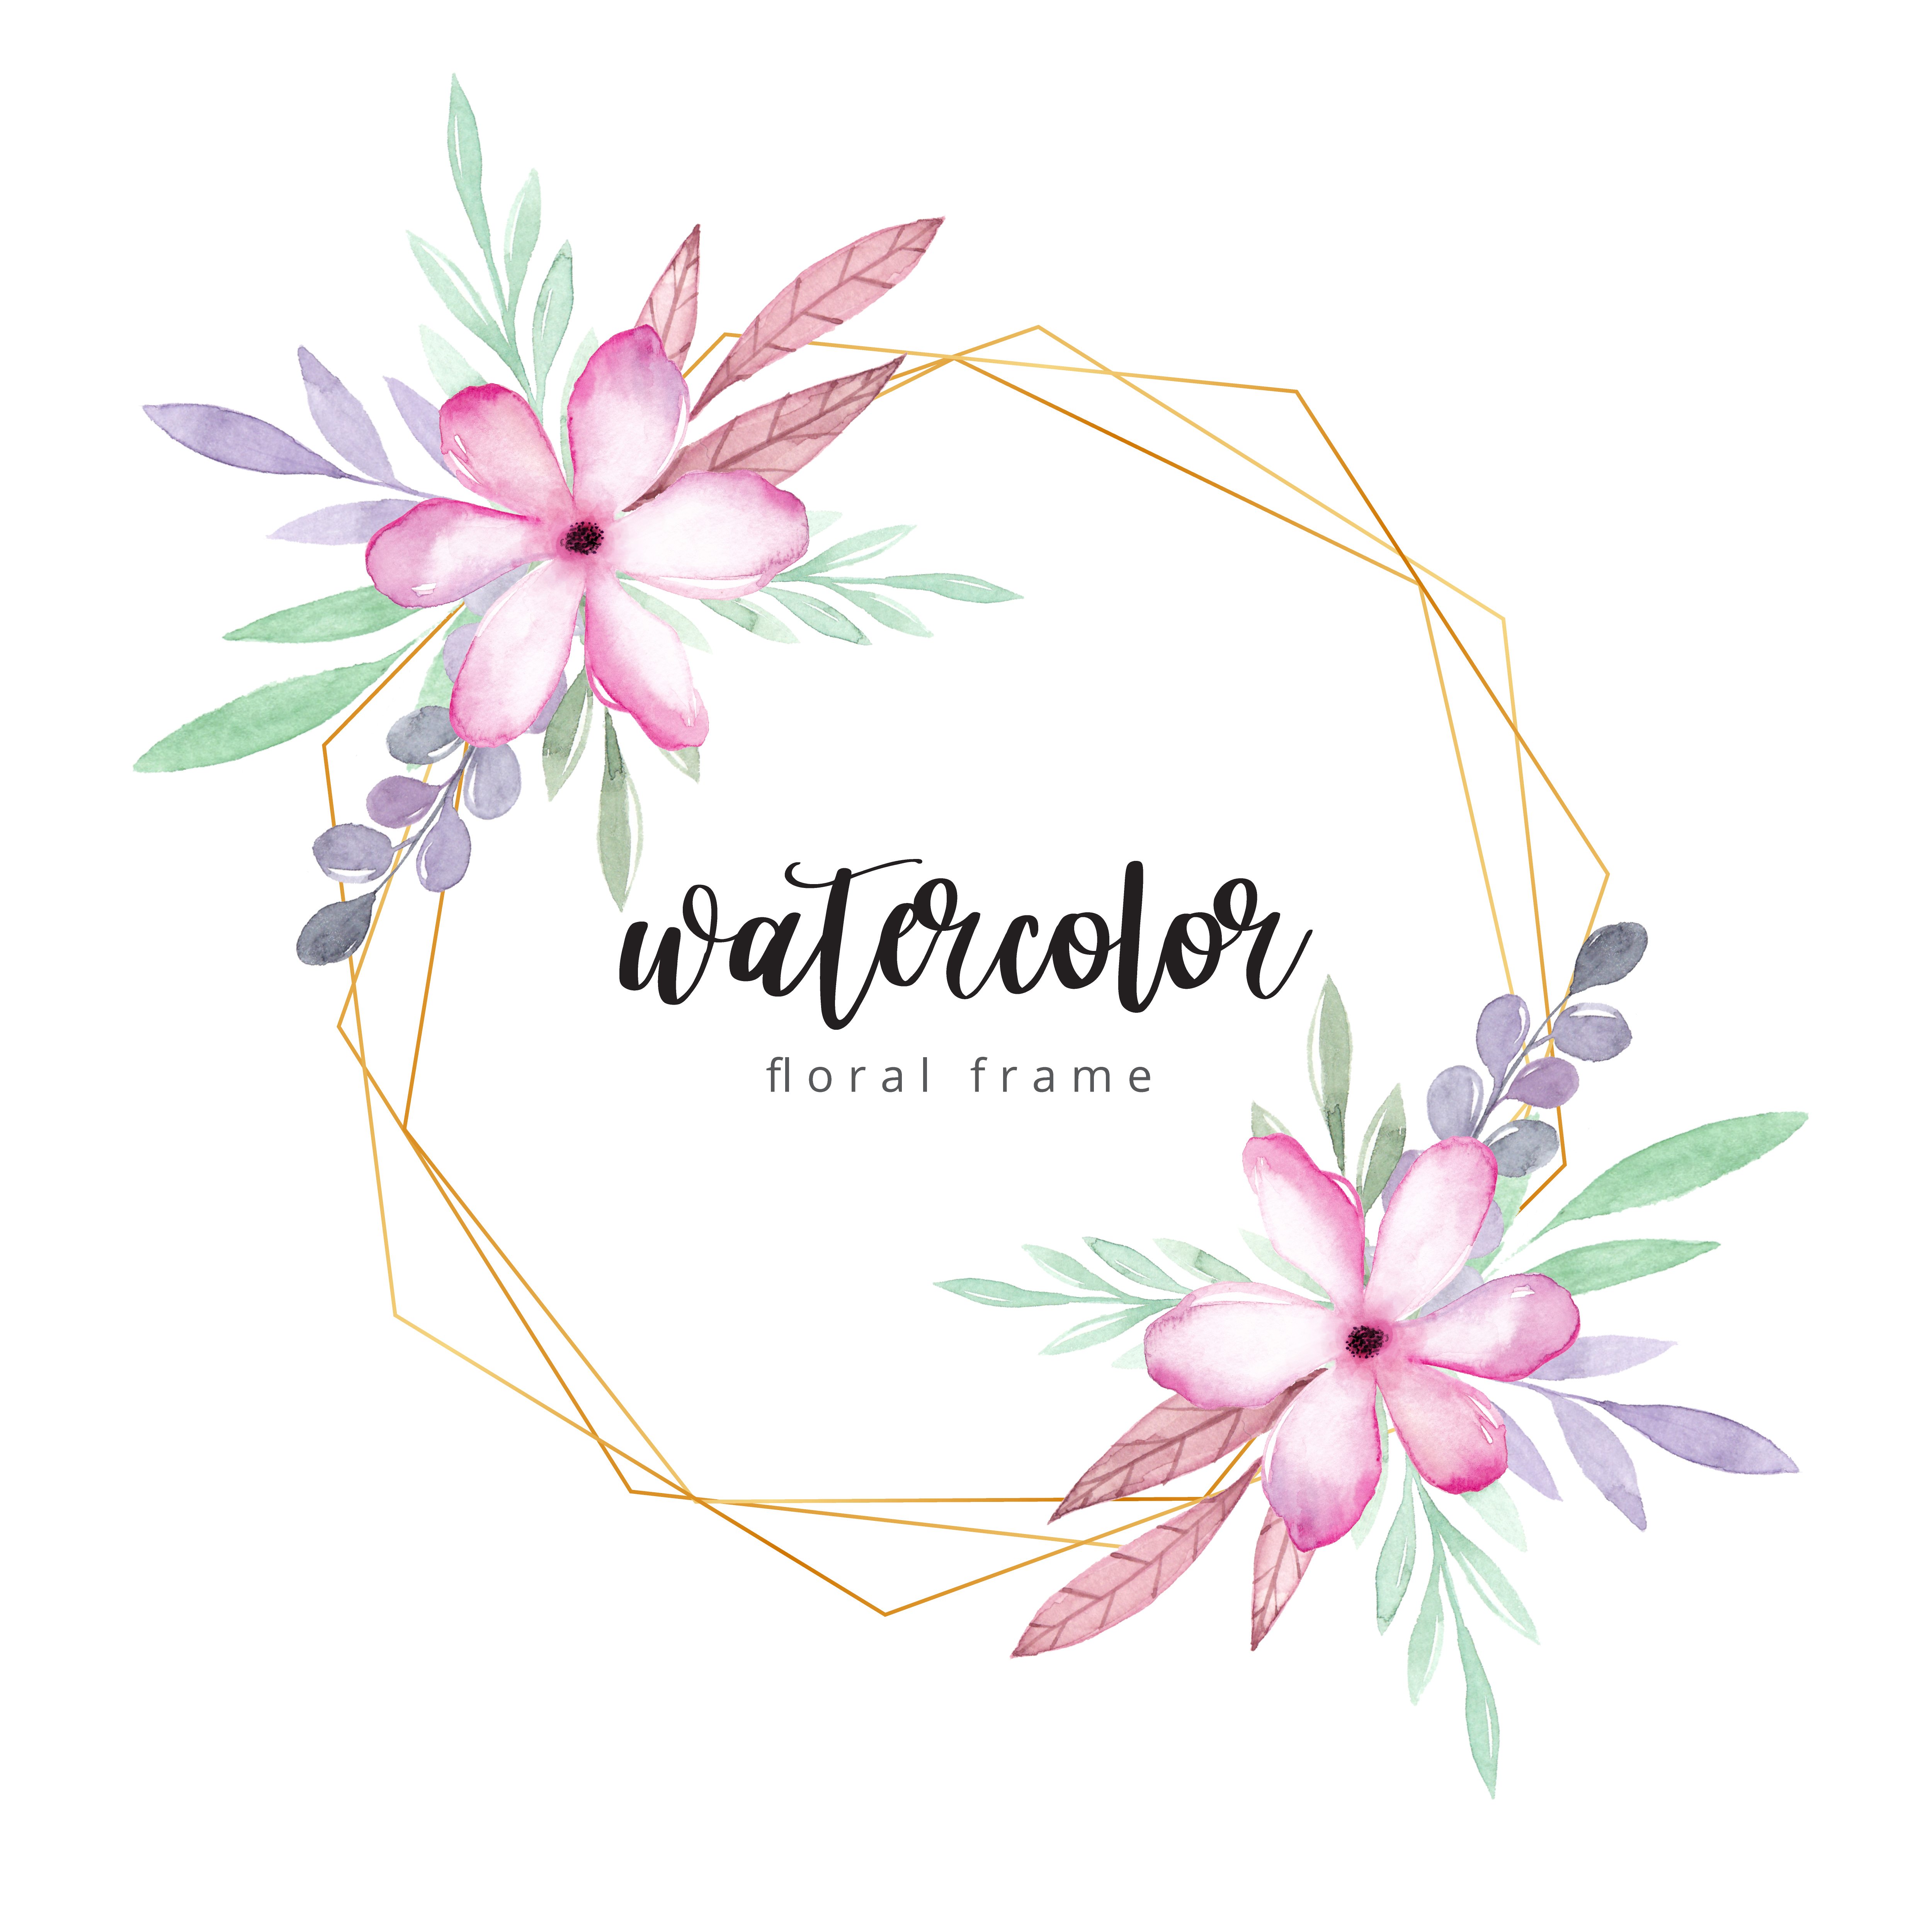 Watercolor Floral Frame With Gold Border Download Free Vectors